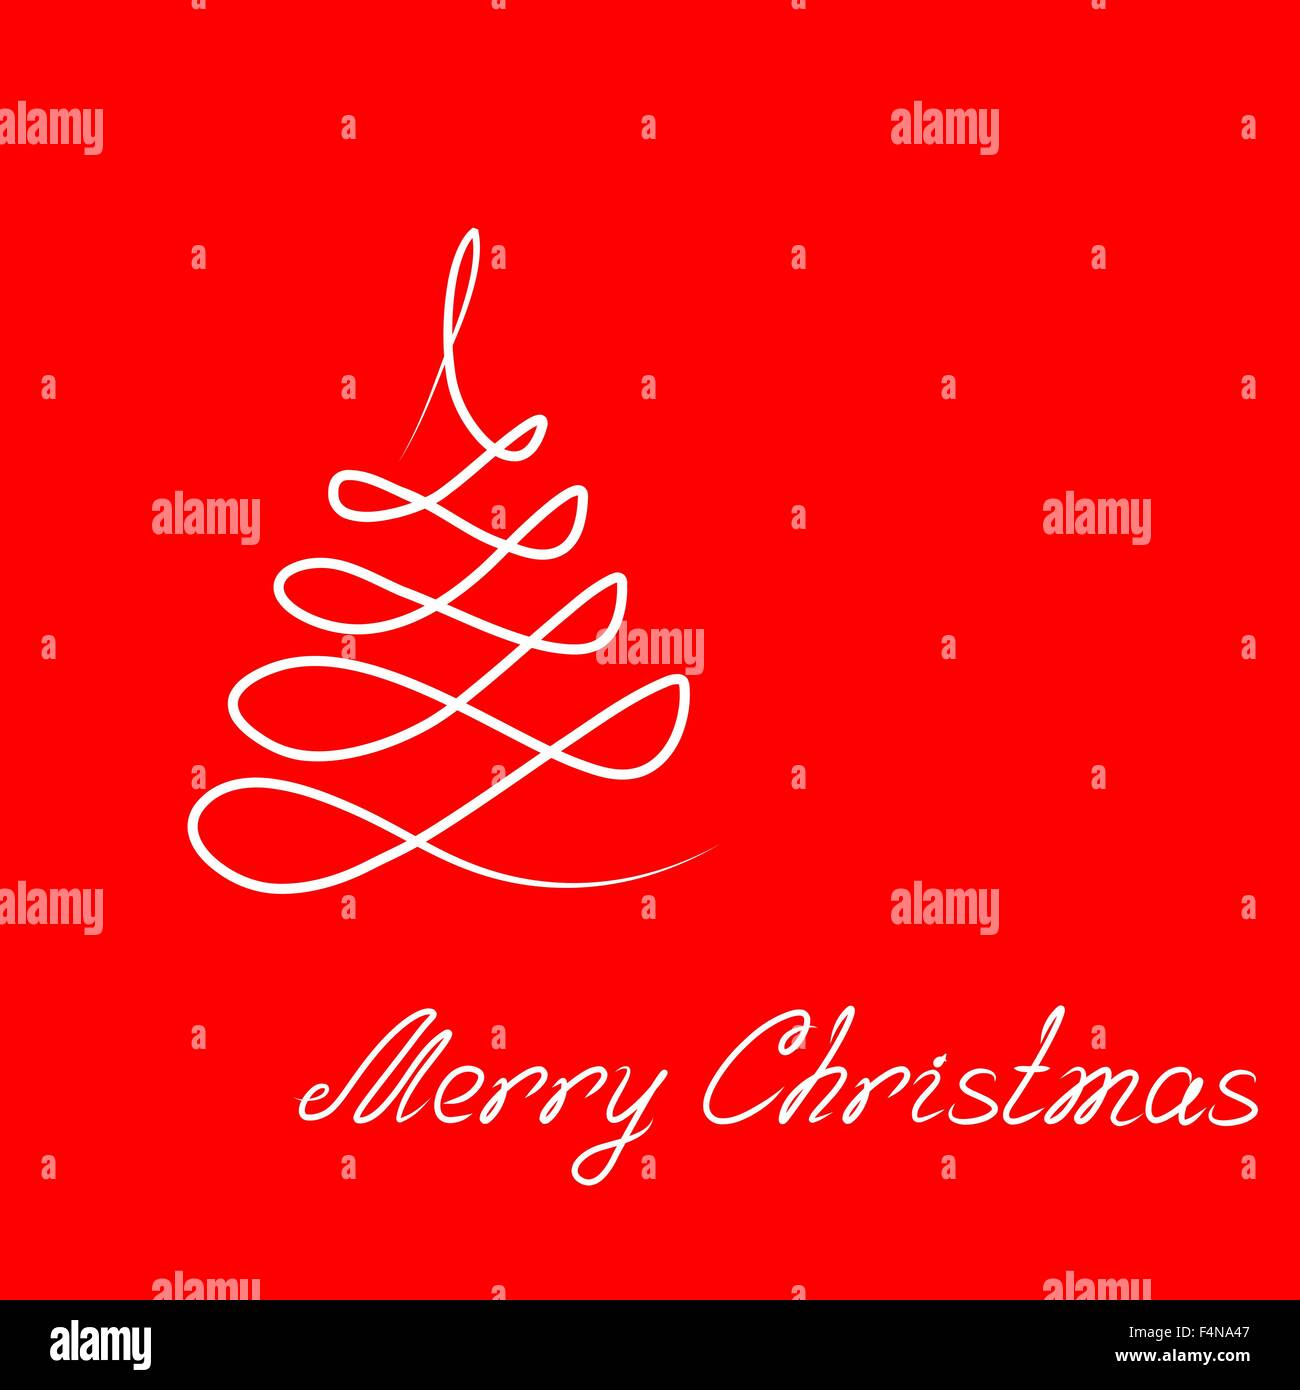 Hand Drawing Illustration Christmas Tree And Lettering Merry Art Vector For Your Design